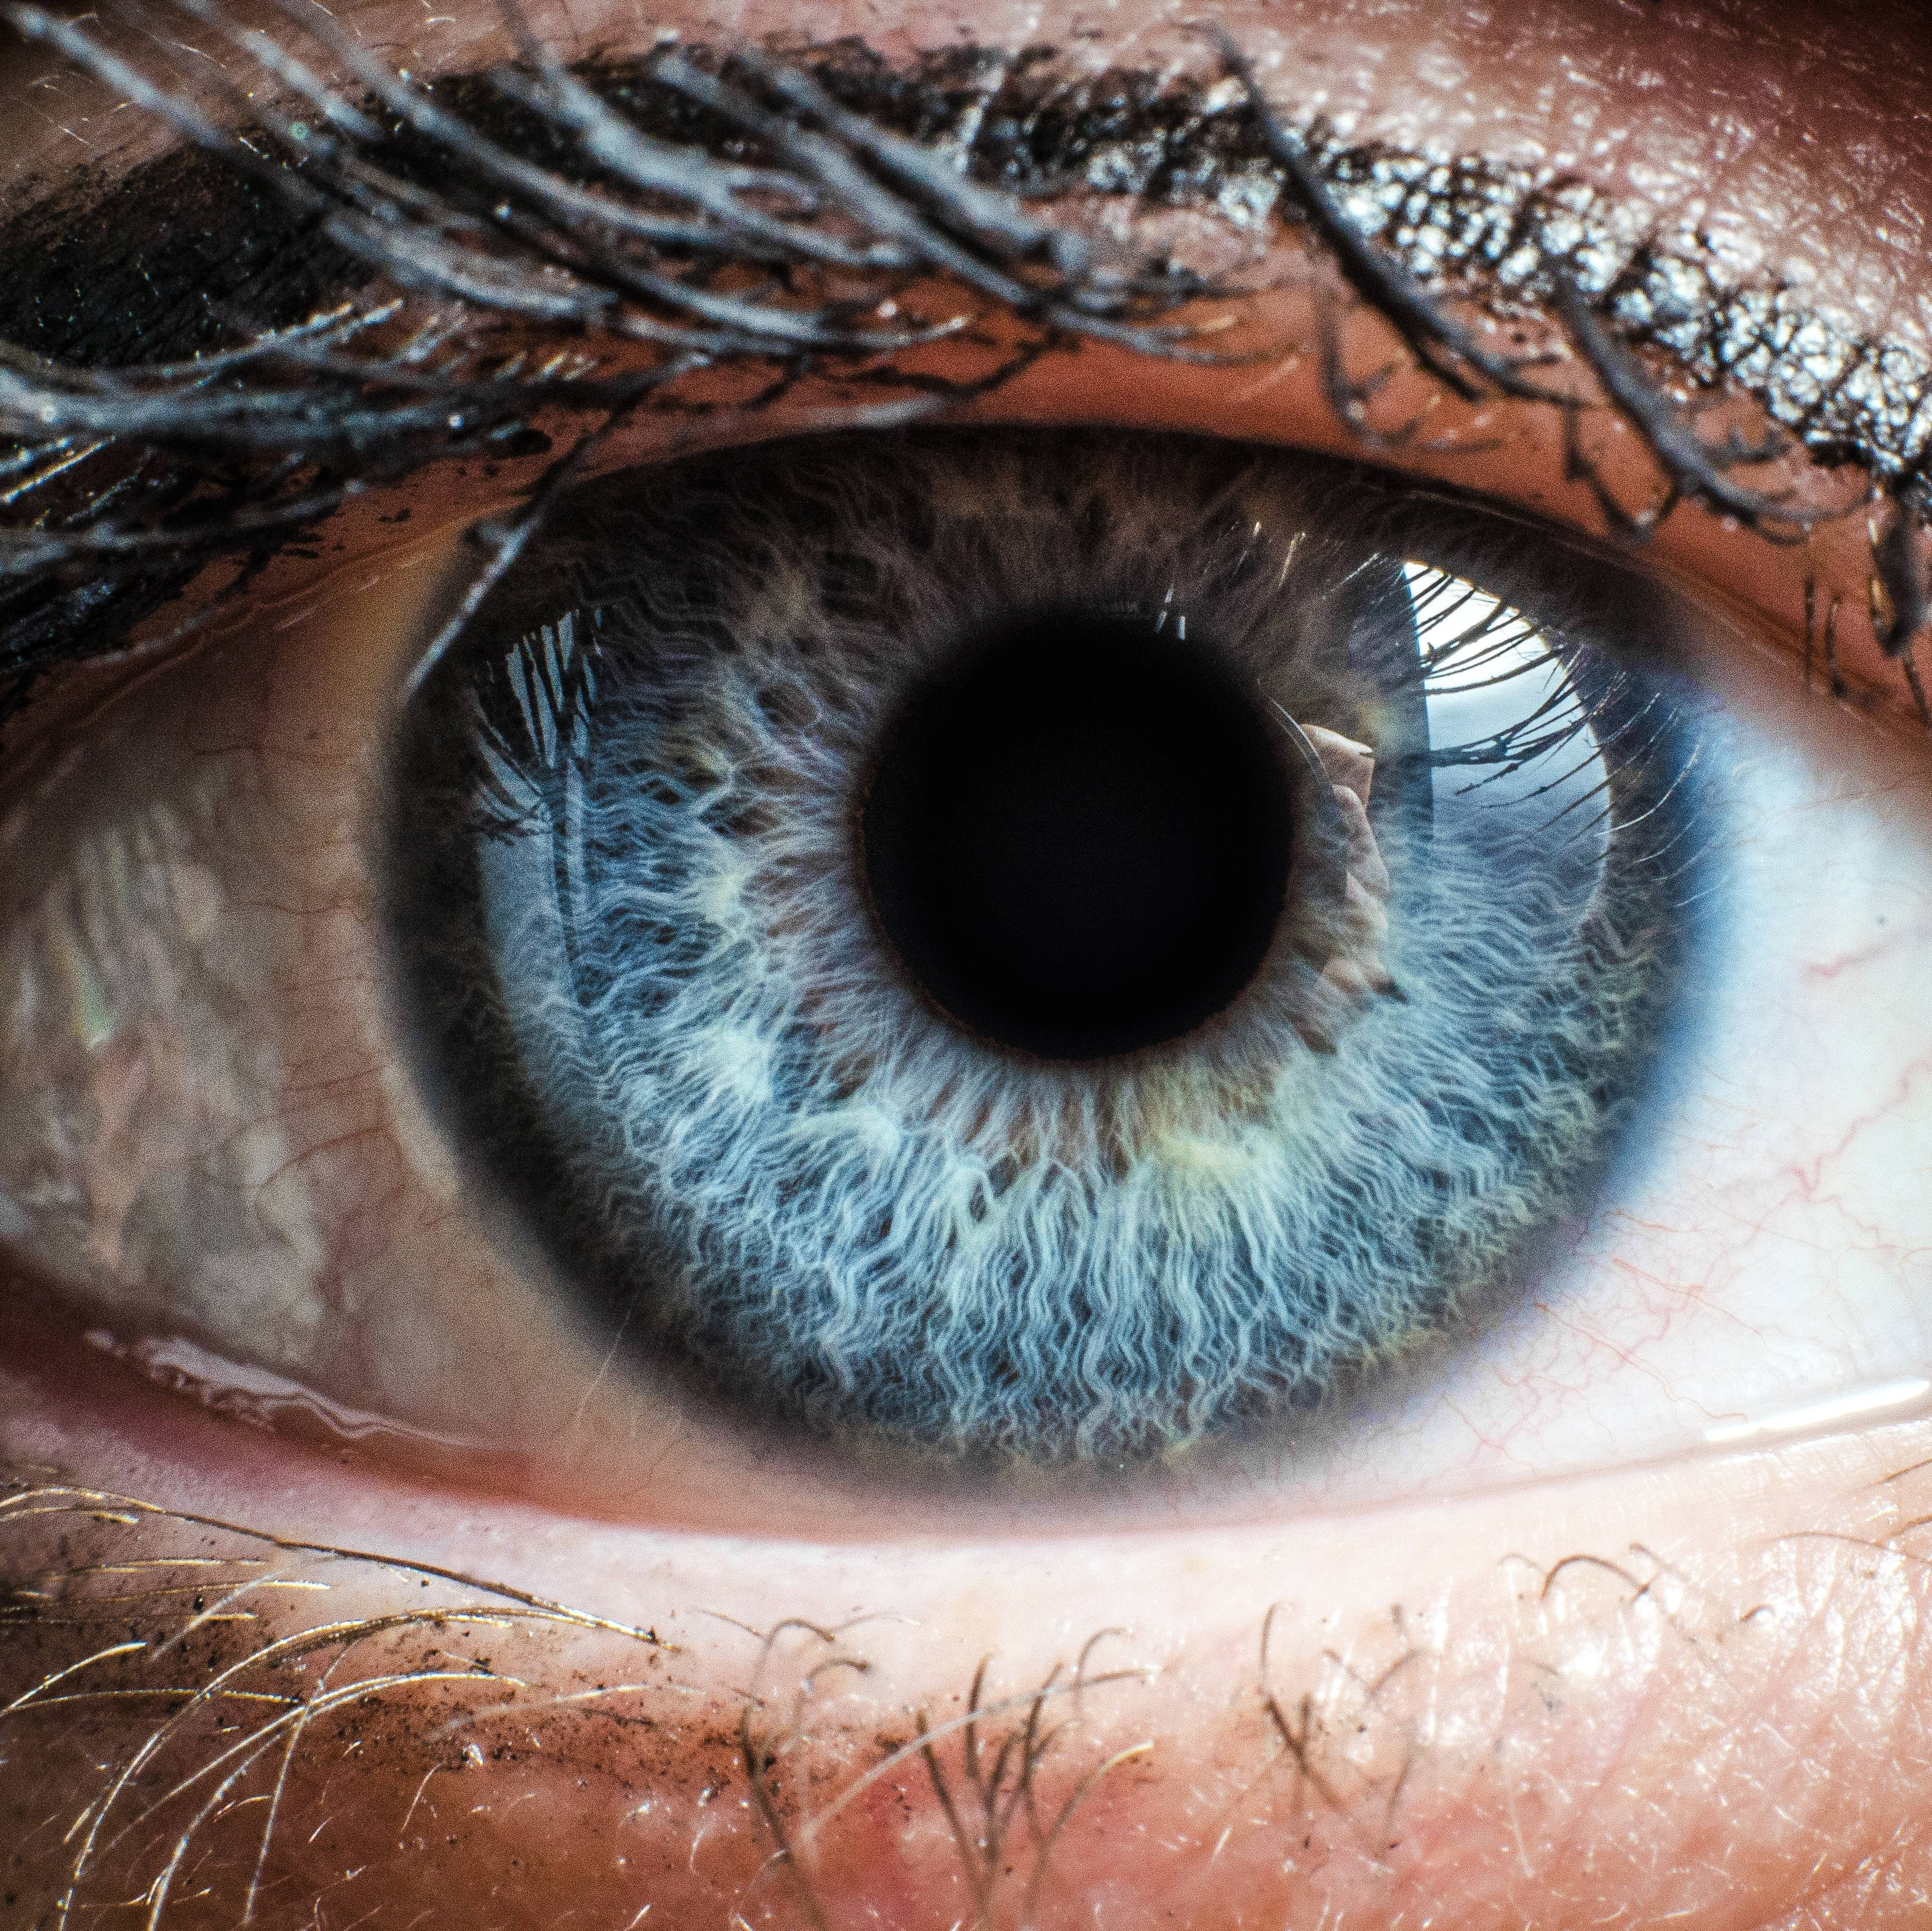 close up of a person's blue eye and eyelashes